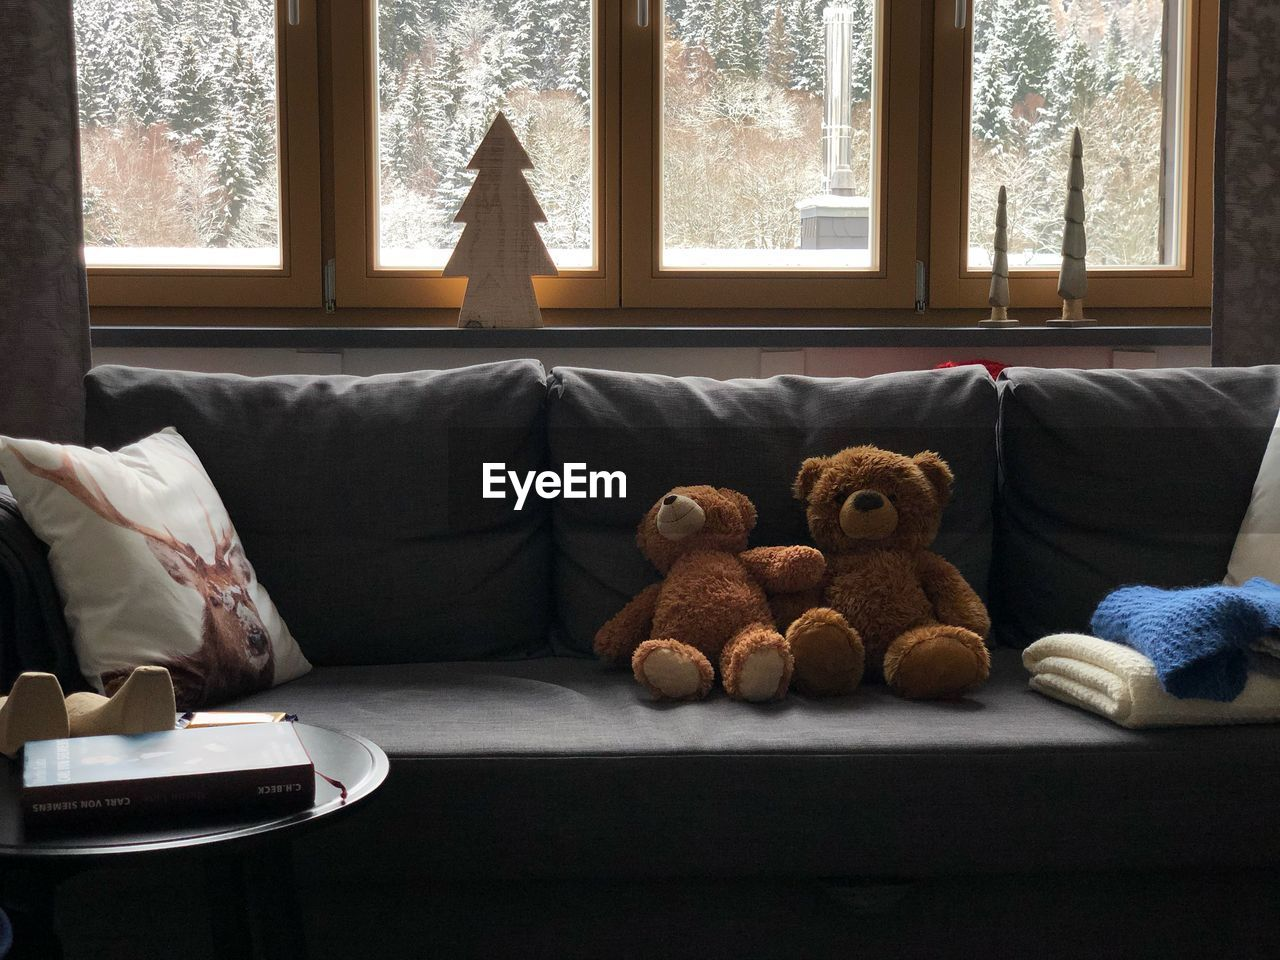 stuffed toy, window, toy, teddy bear, furniture, indoors, no people, domestic room, pillow, day, home interior, sofa, curtain, absence, glass - material, animal representation, stuffed, transparent, living room, softness, electric lamp